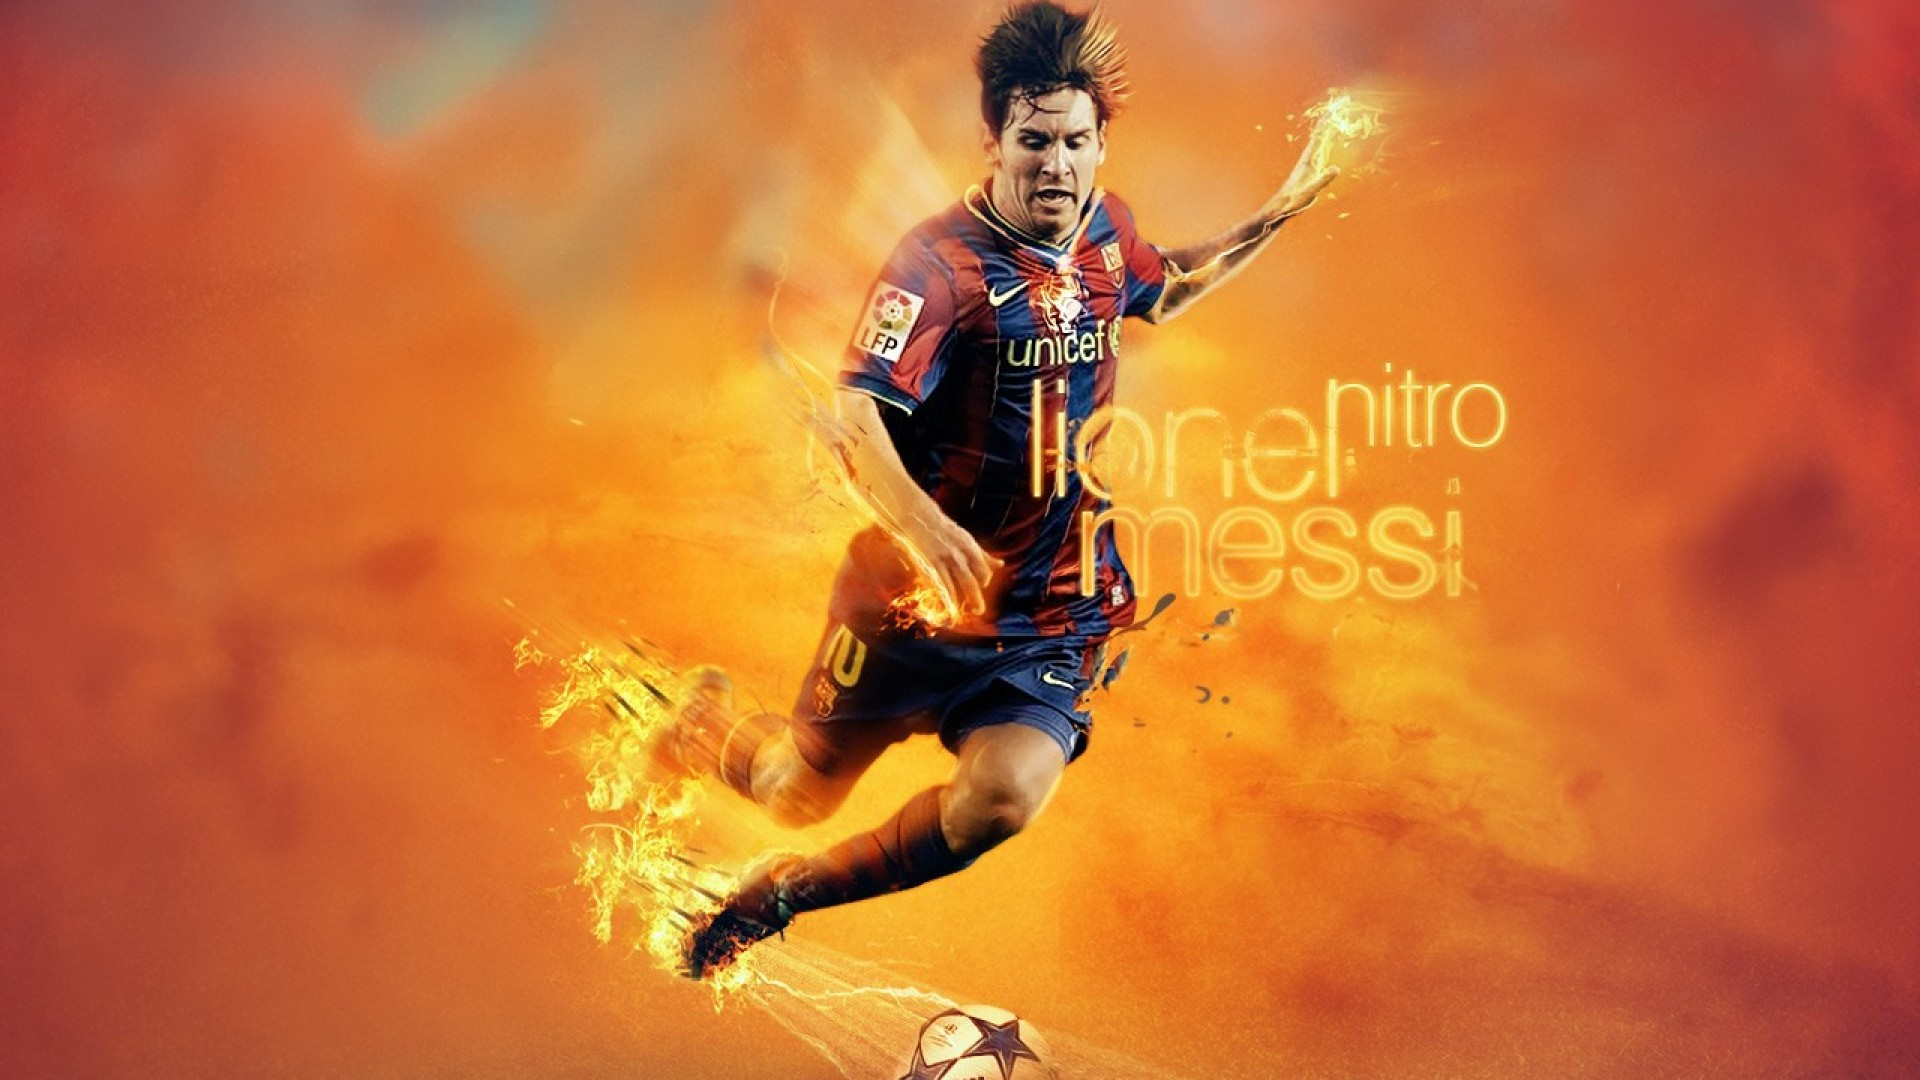 Best Free Messi HD Wallpapers  for Desktop  Magazine Fuse 1920x1080